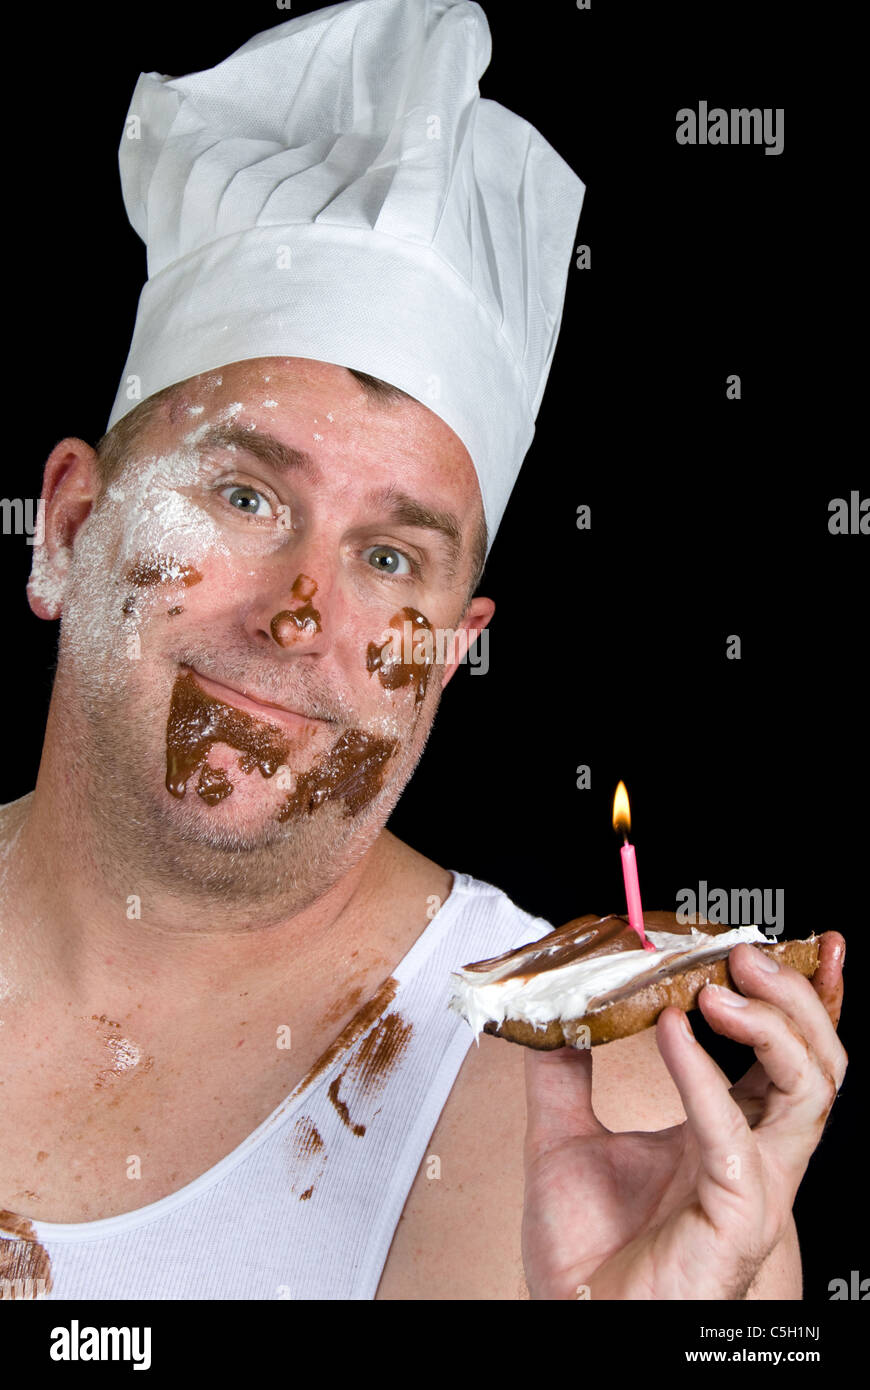 A chef shows off his failed cake consisting of a piece of burnt toast, with chocolate and vanilla icing and a birthday - Stock Image